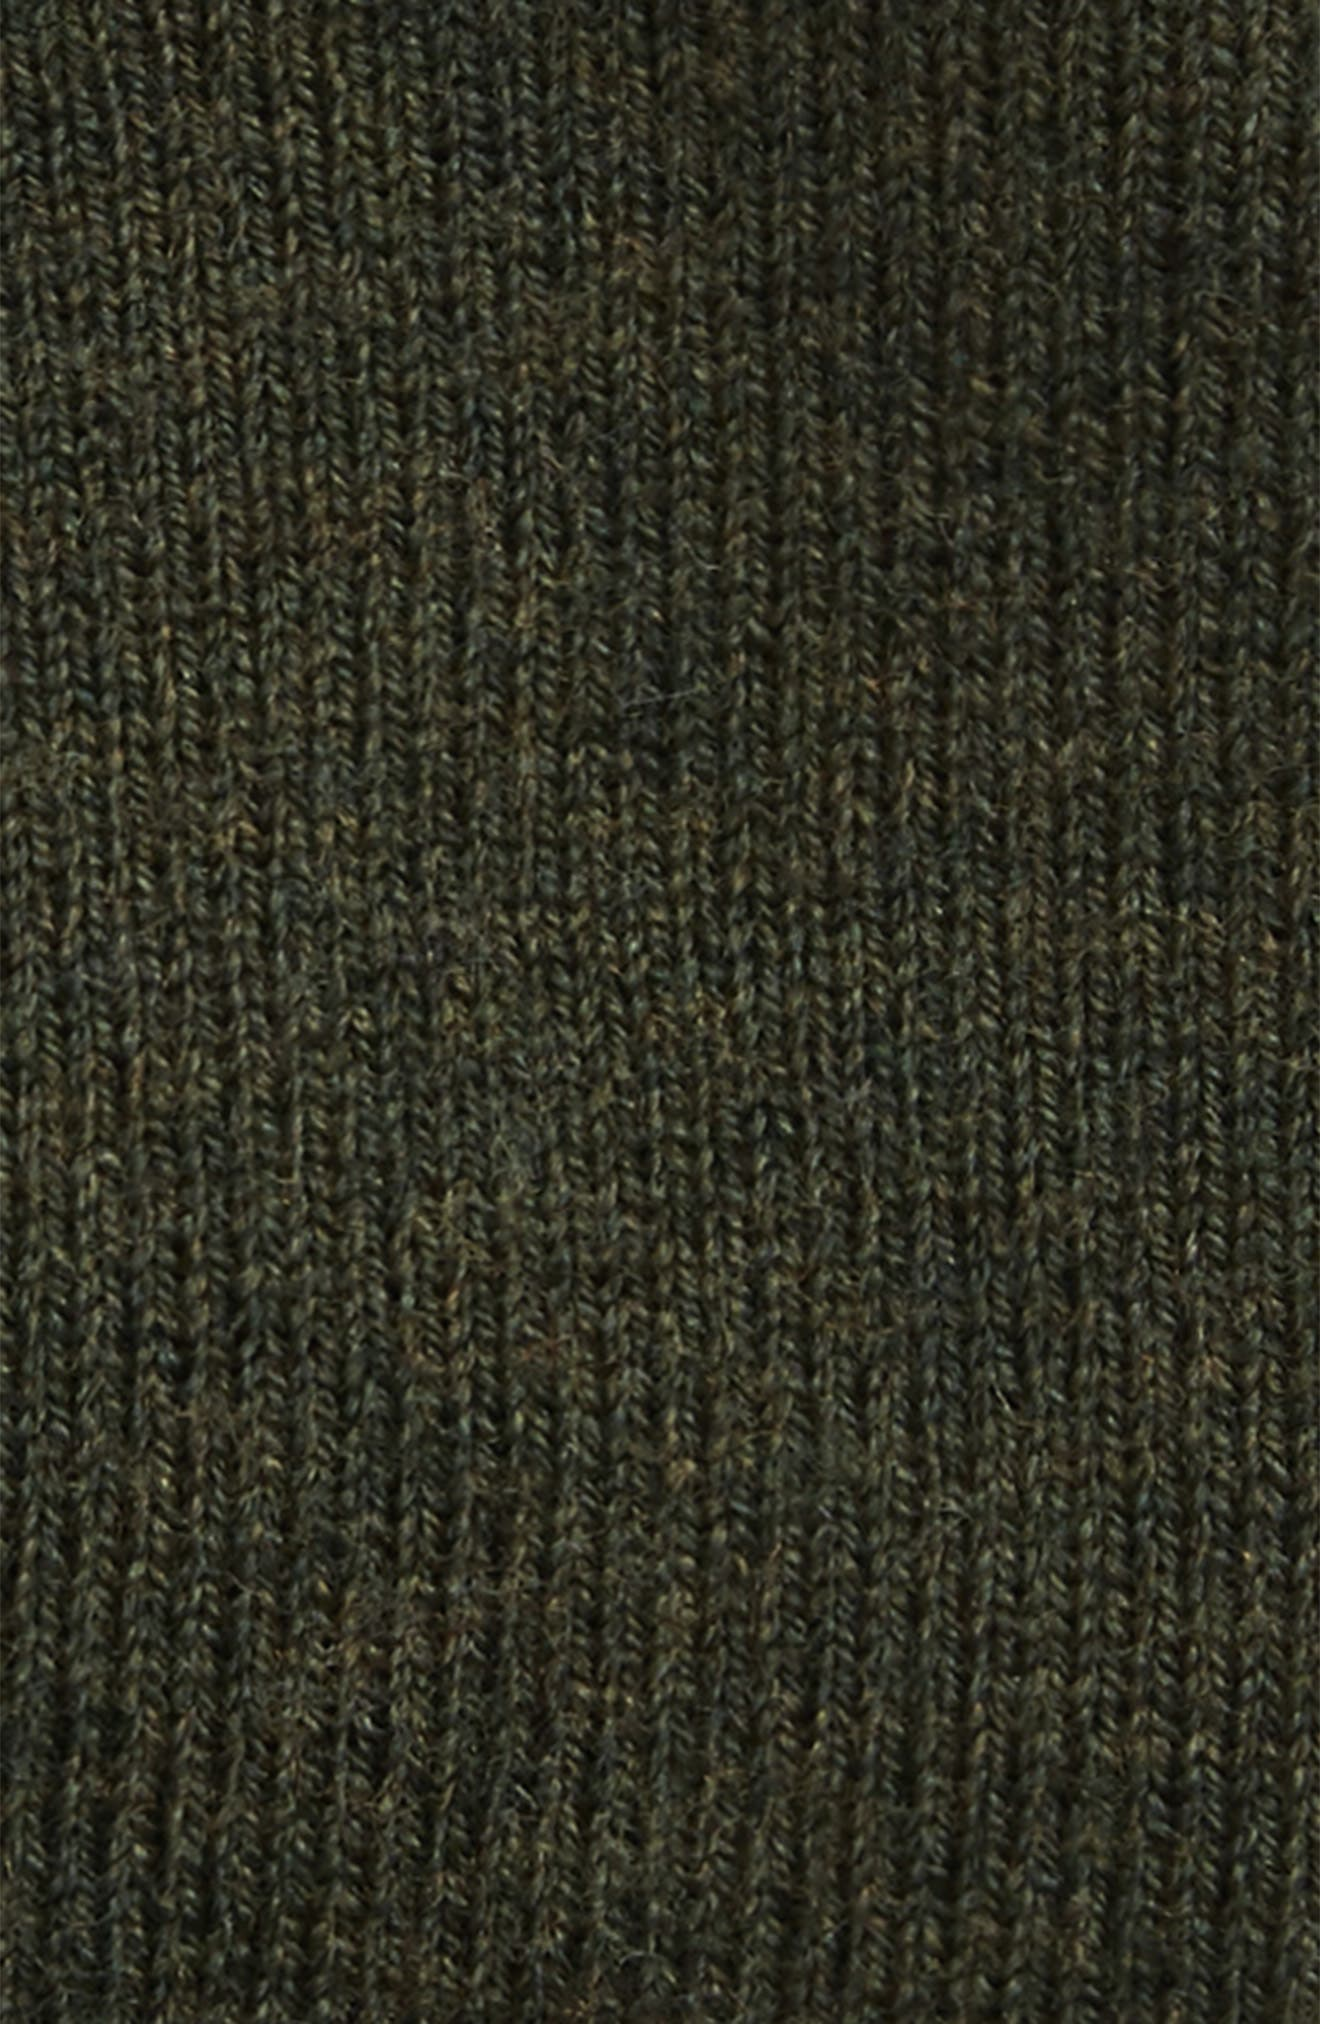 Addison Stretch Merino Wool Knit Cap,                             Alternate thumbnail 2, color,                             Army Green